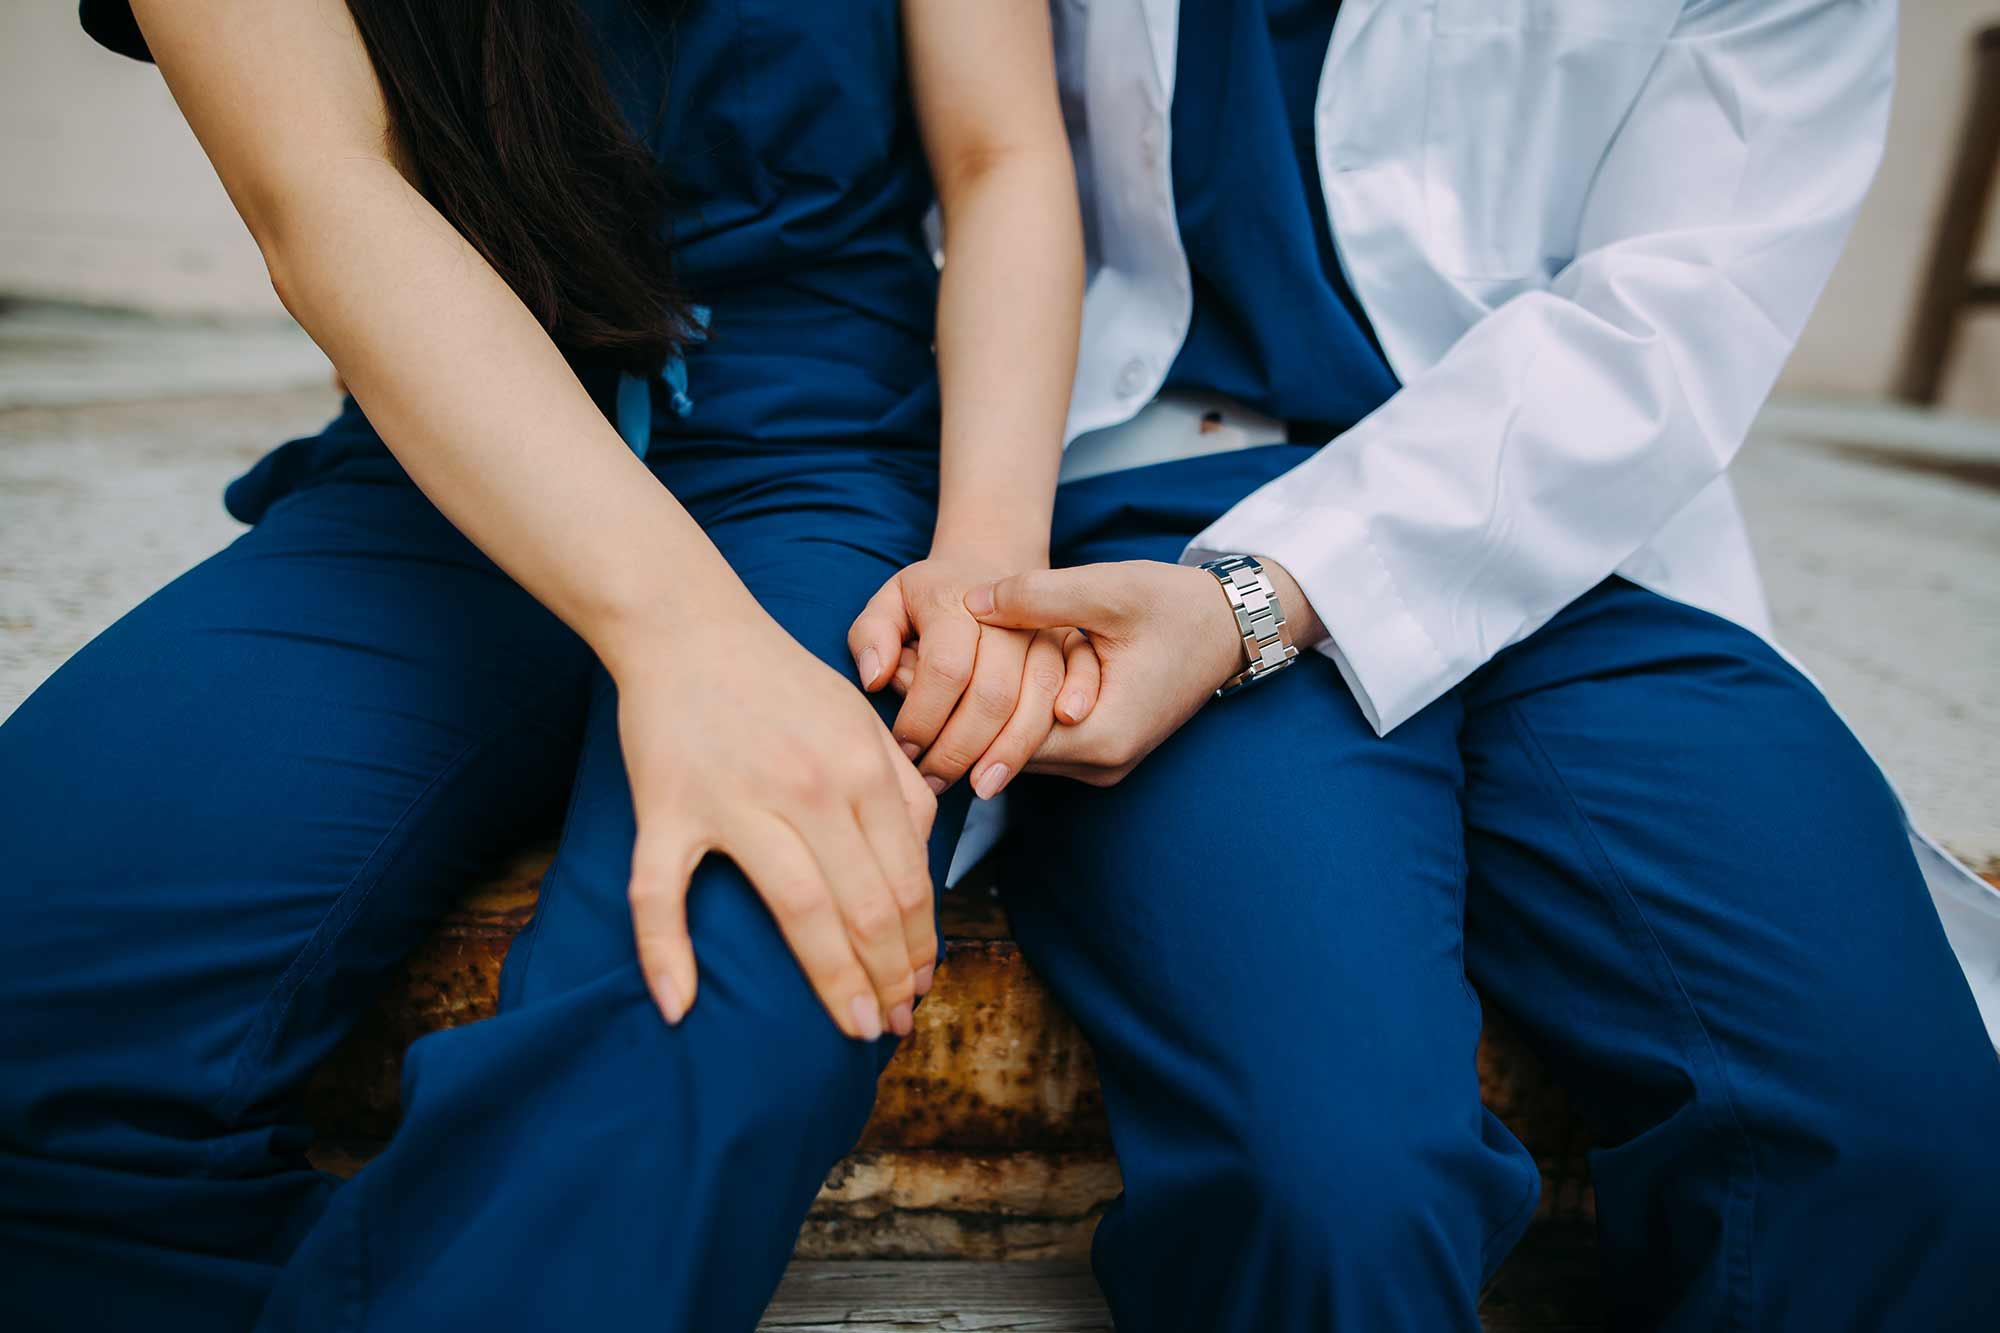 What Is The Key To A Lasting Medical Relationship?